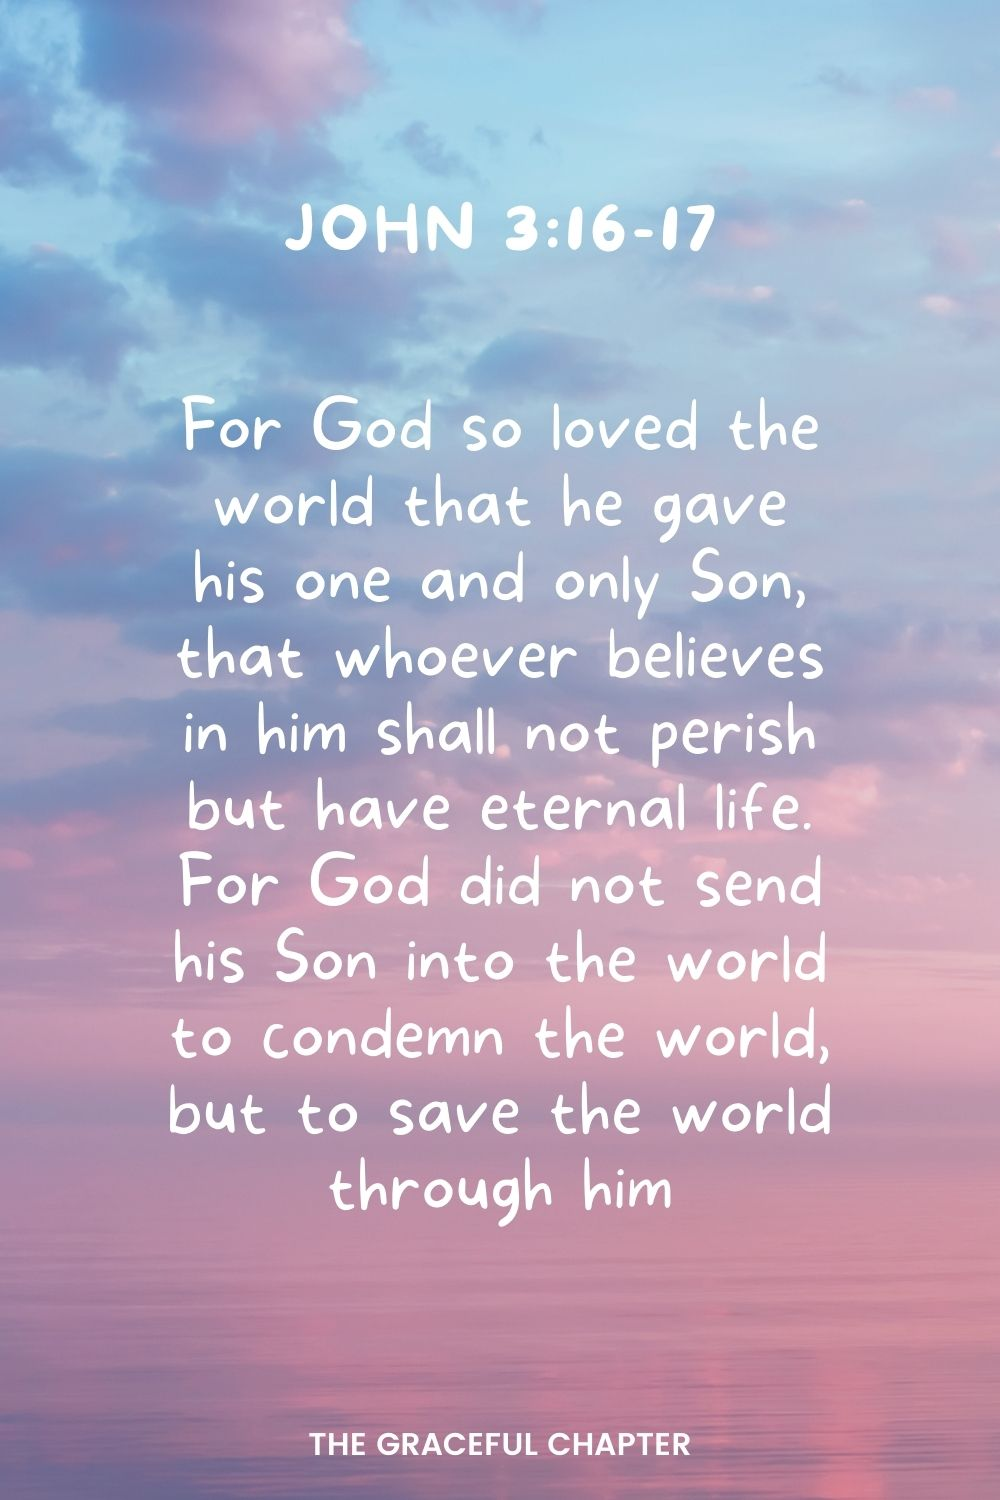 For God so loved the world that he gave his one and only Son, that whoever believes in him shall not perish but have eternal life.For God did not send his Son into the world to condemn the world, but to save the world through him. John 3:16-17